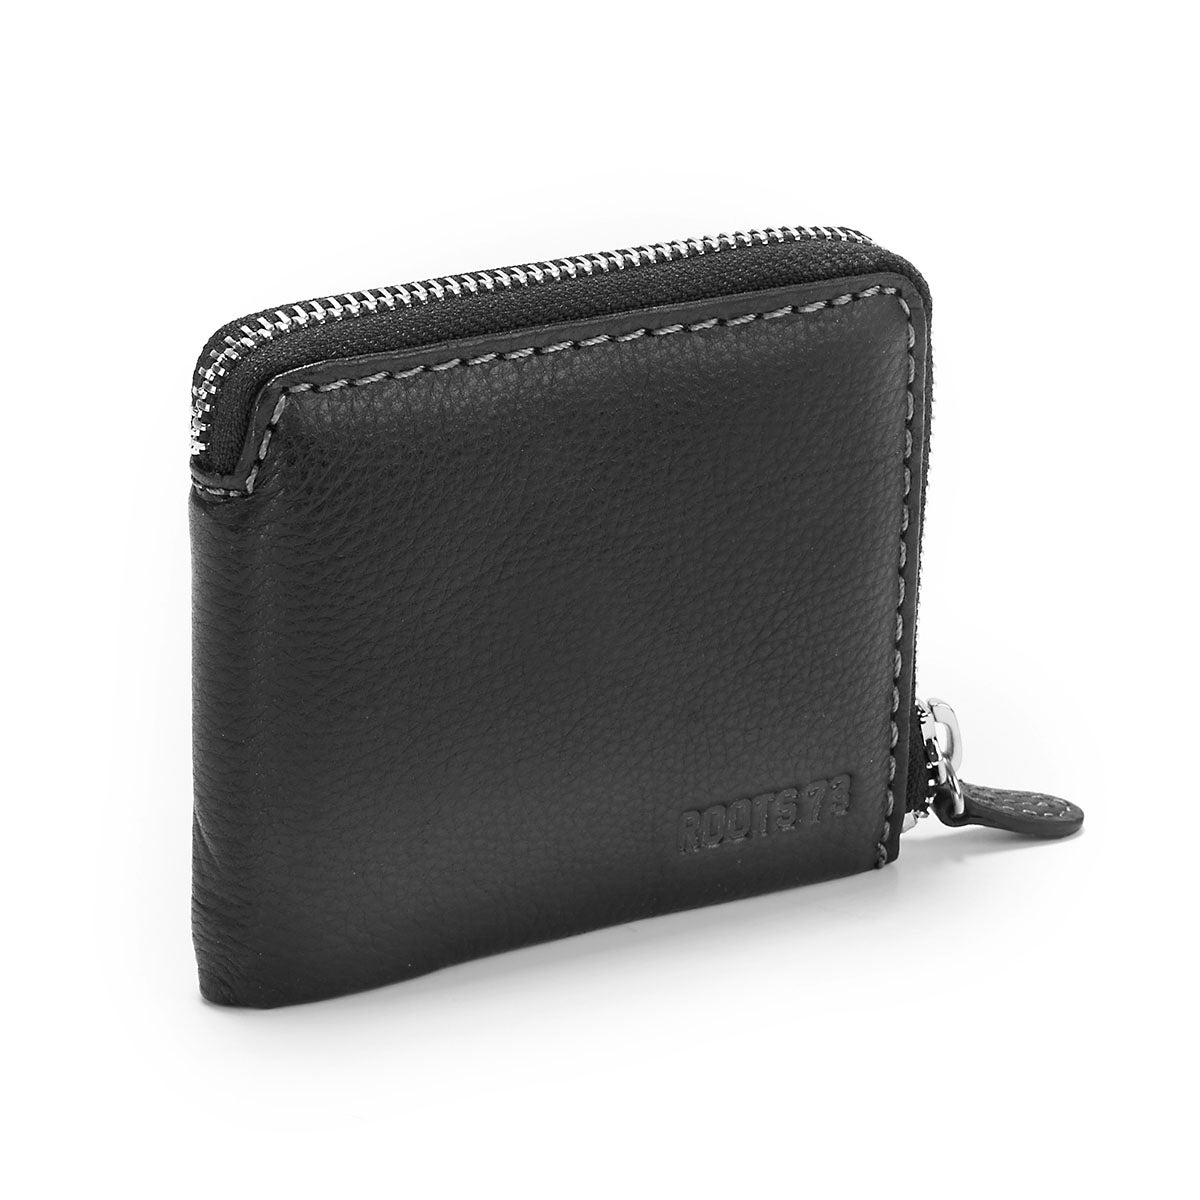 Mns Arelia 304 black zip wallet